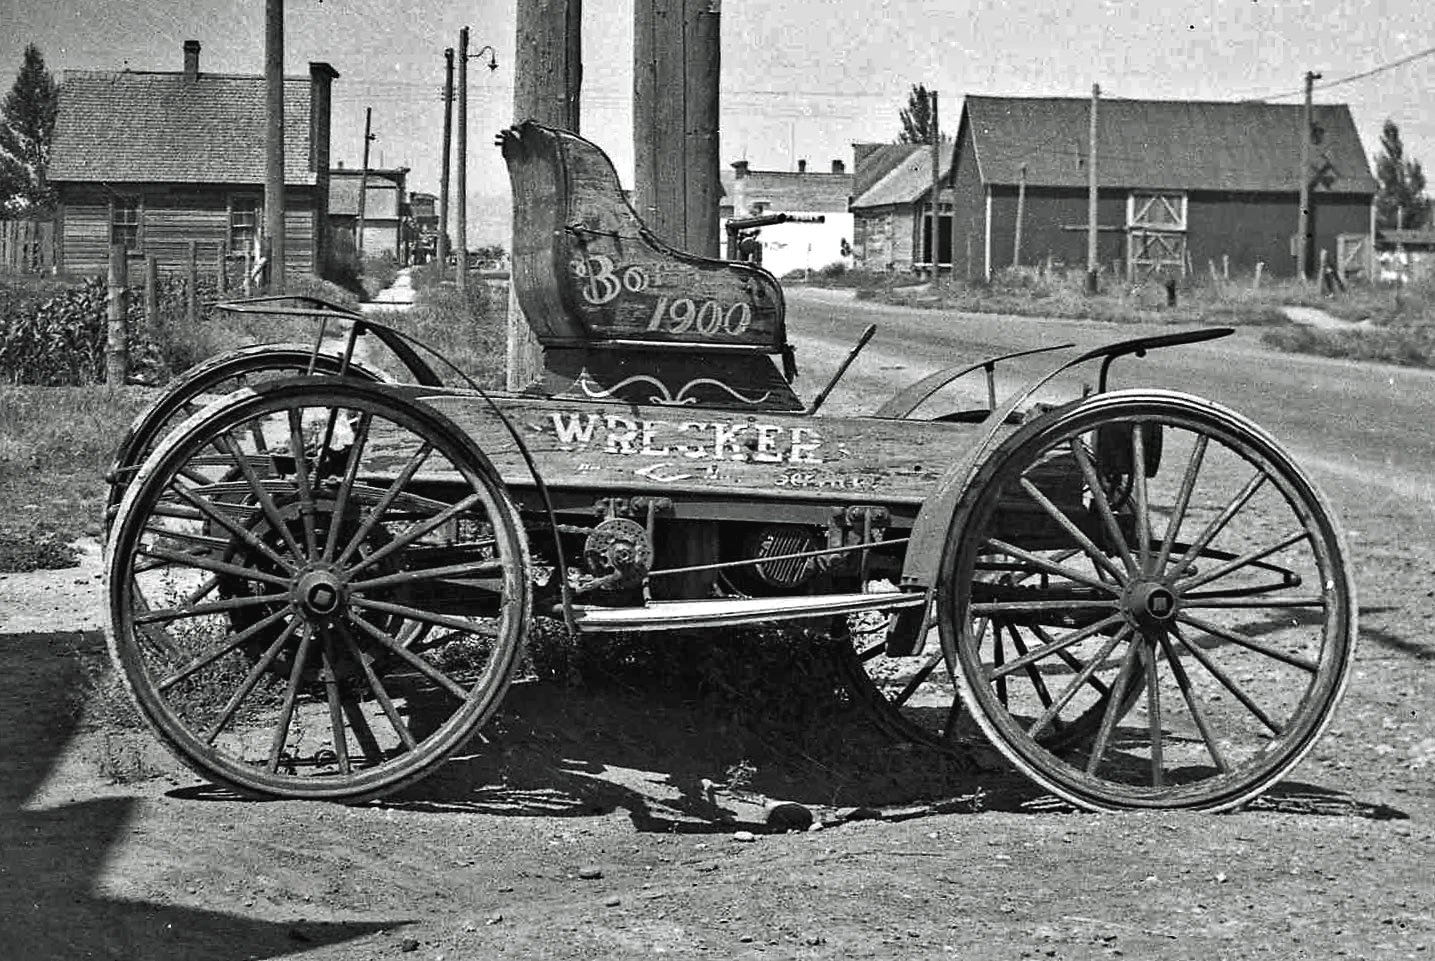 A late 19th century horseless carriage, photography taken in 1936